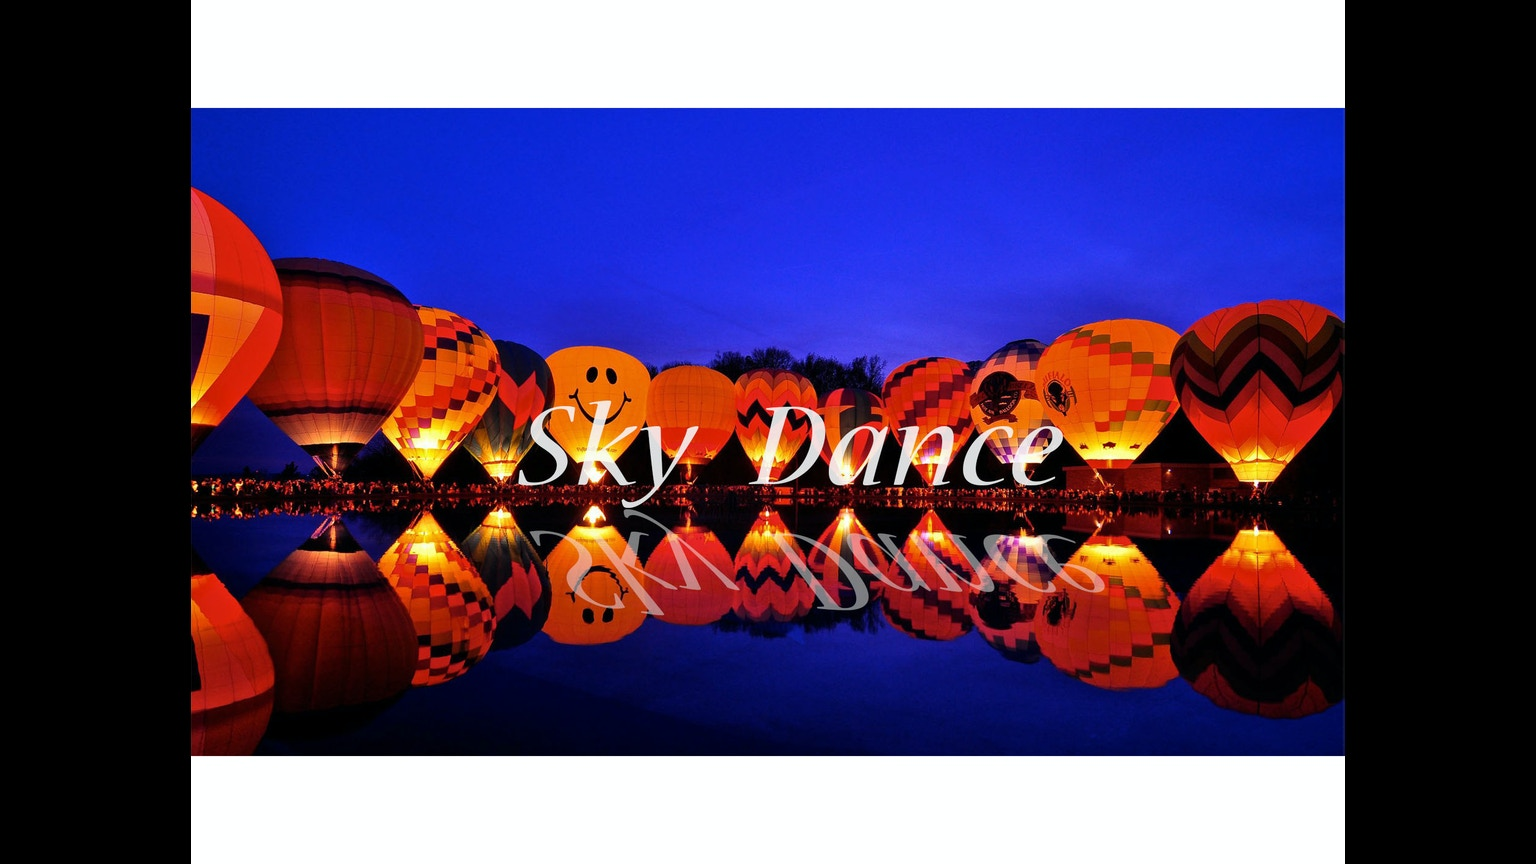 Sky dance by meghan hadfield kickstarter for Food bar hadfield